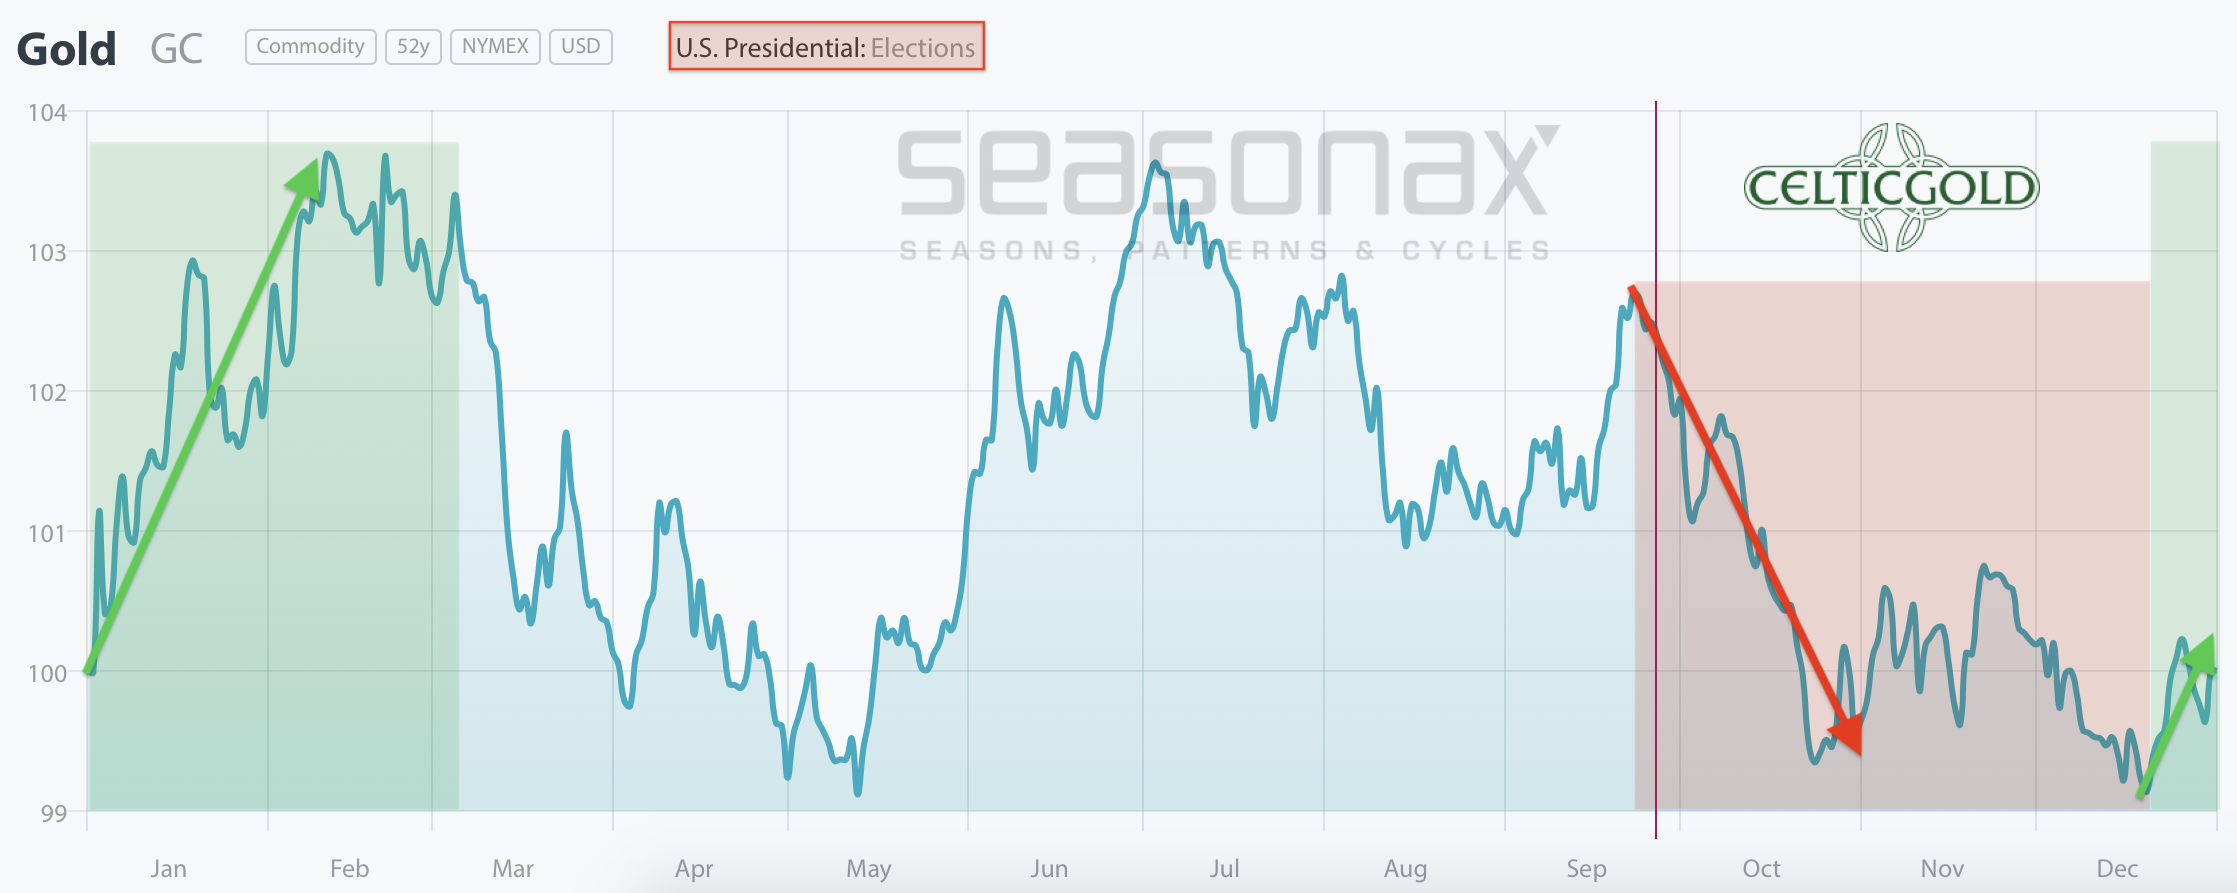 Seasonality for Gold in US Election Years as of September 26th, 2020. Source: Seasonax